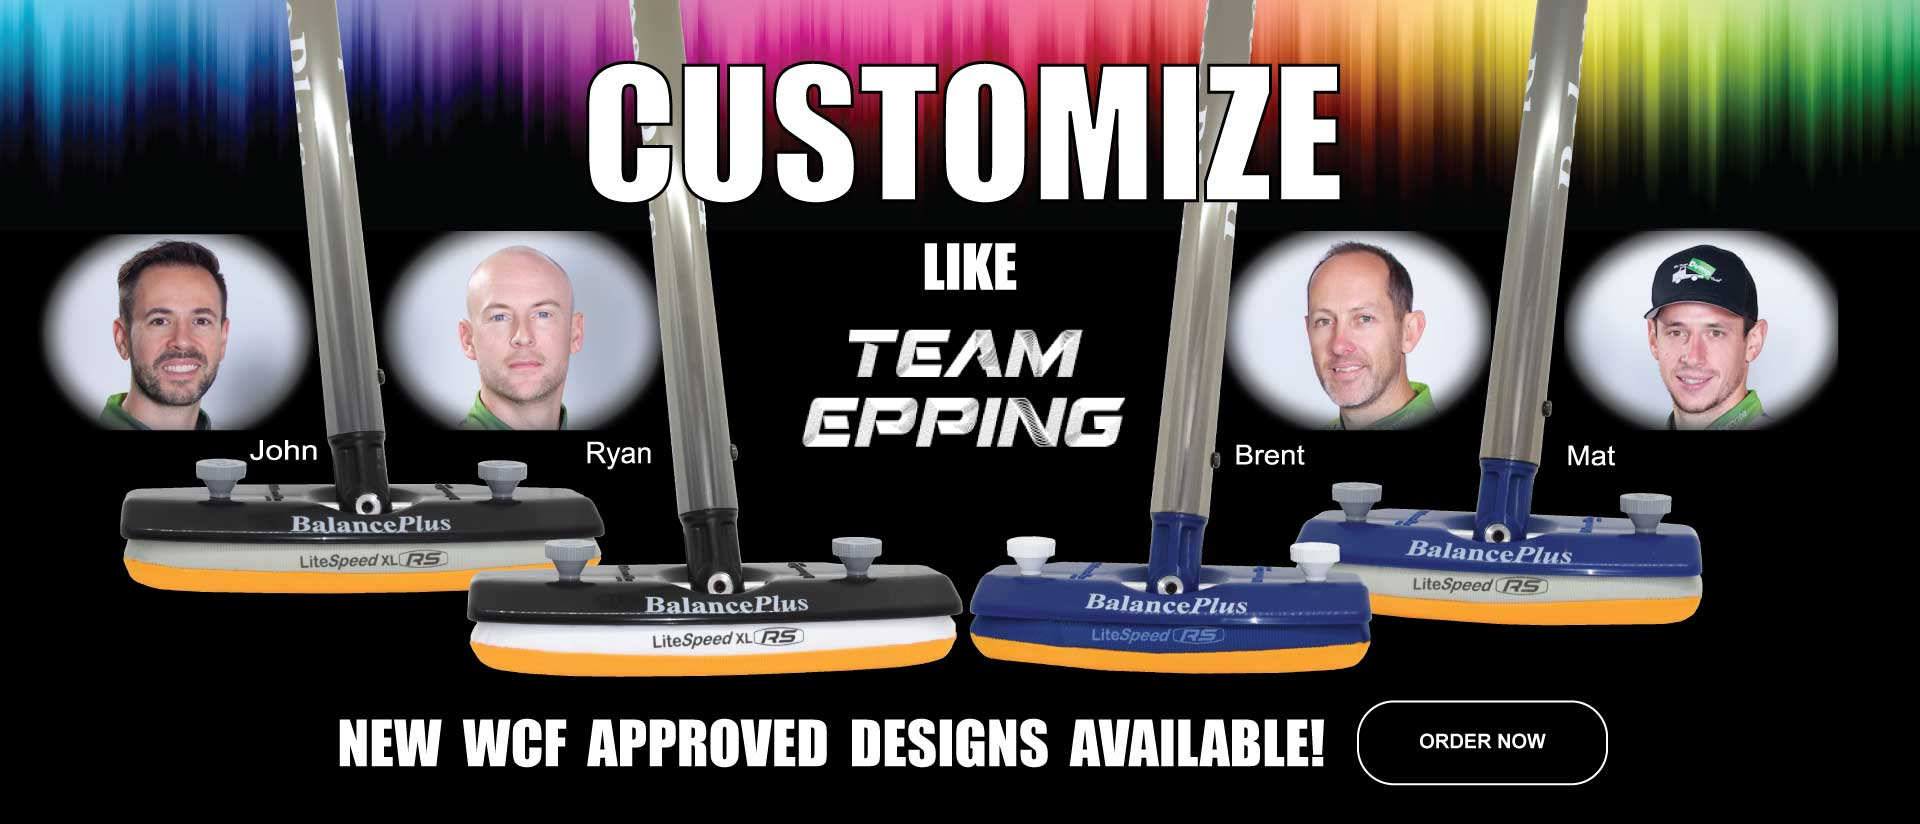 Customize Like Team Epping